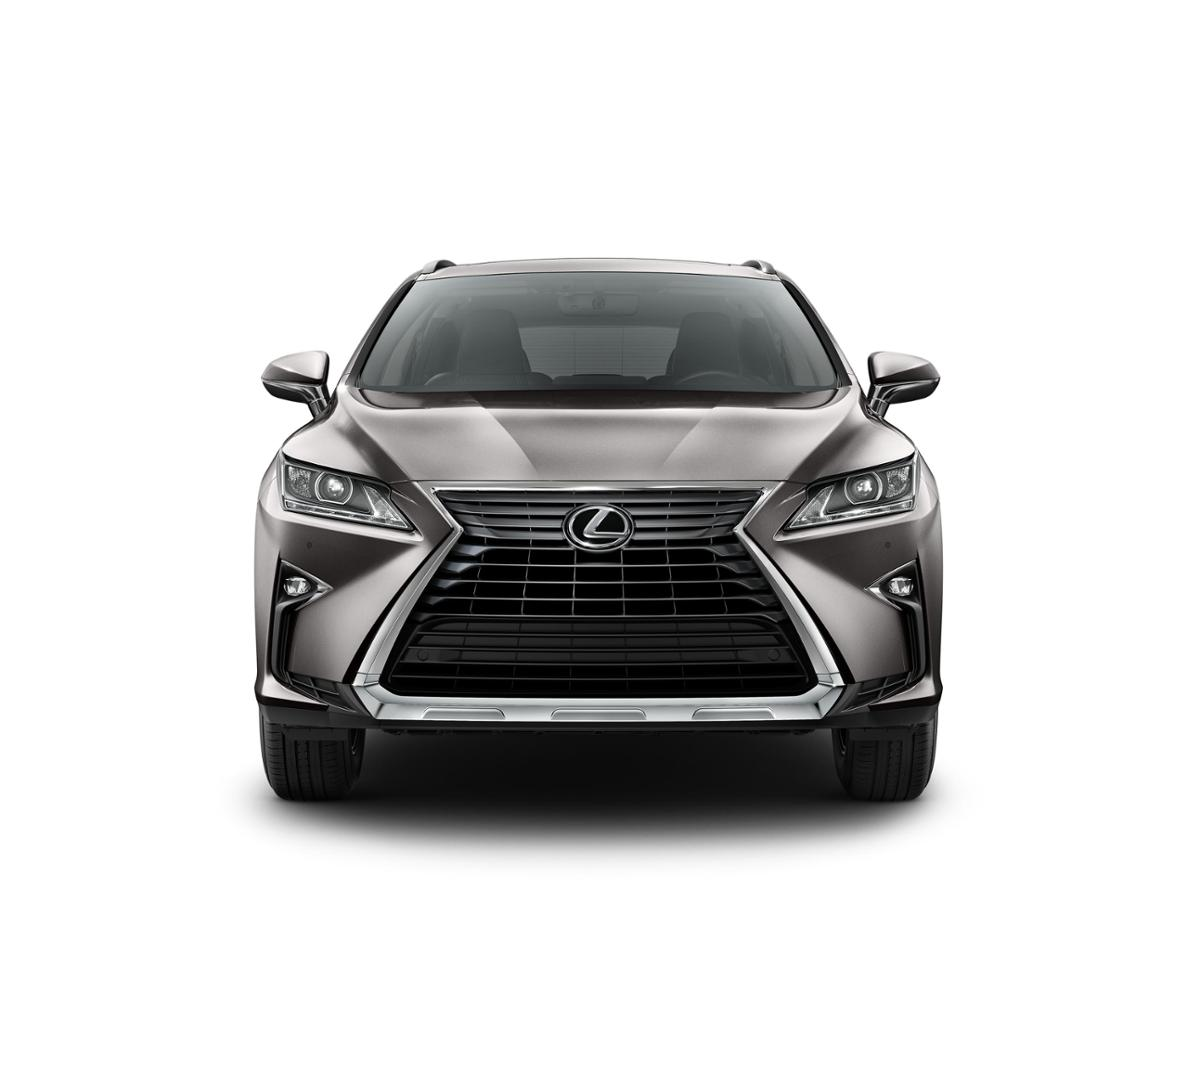 Lexus Rx 350 Lease: 2018 Atomic Silver RX 350 Lexus RX 350 For Sale In Colma